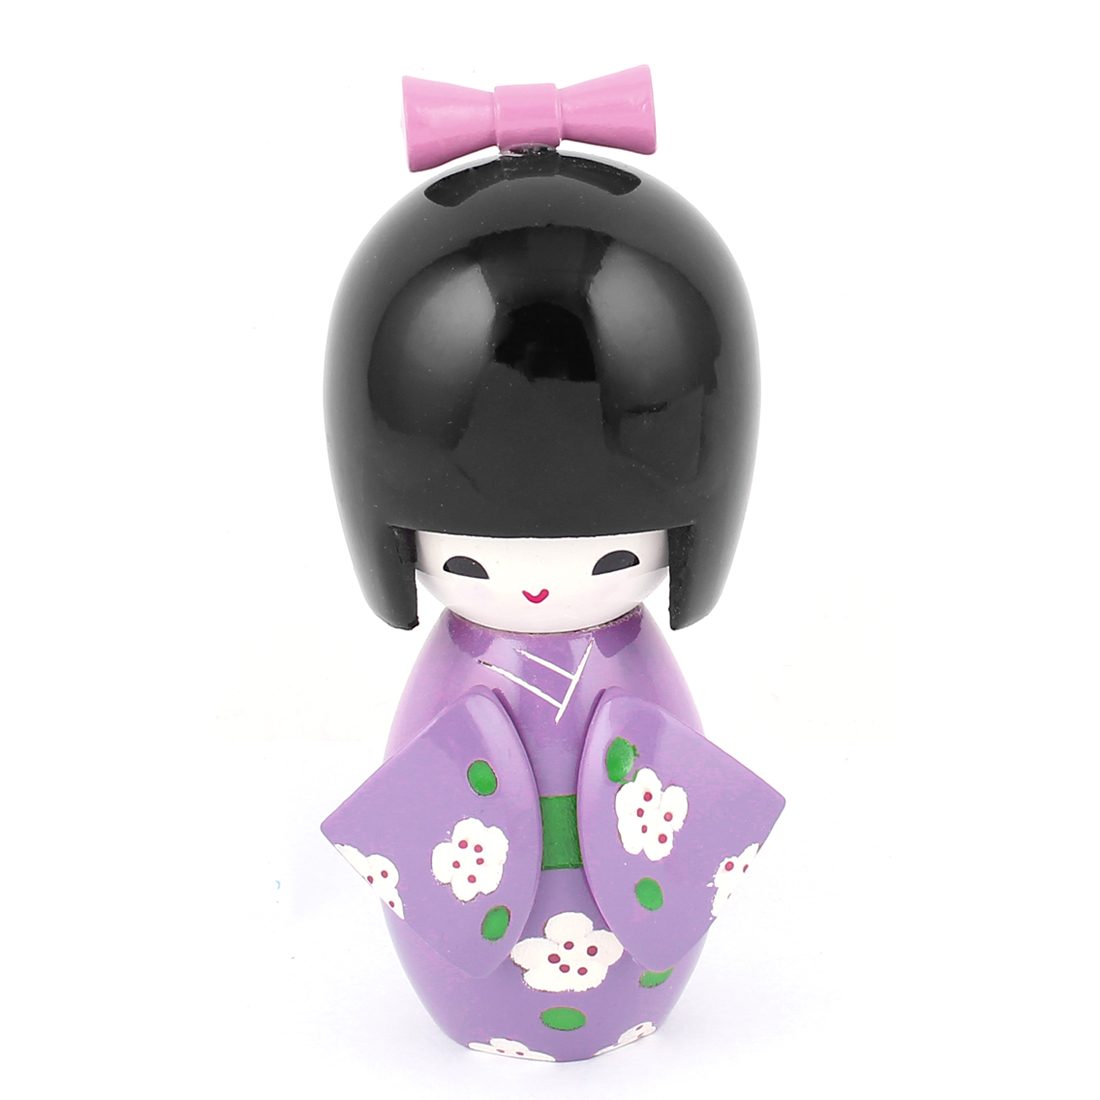 Manual Floral Decor Kimono Wooden Craft Gift Japanese Kokeshi Doll Purple